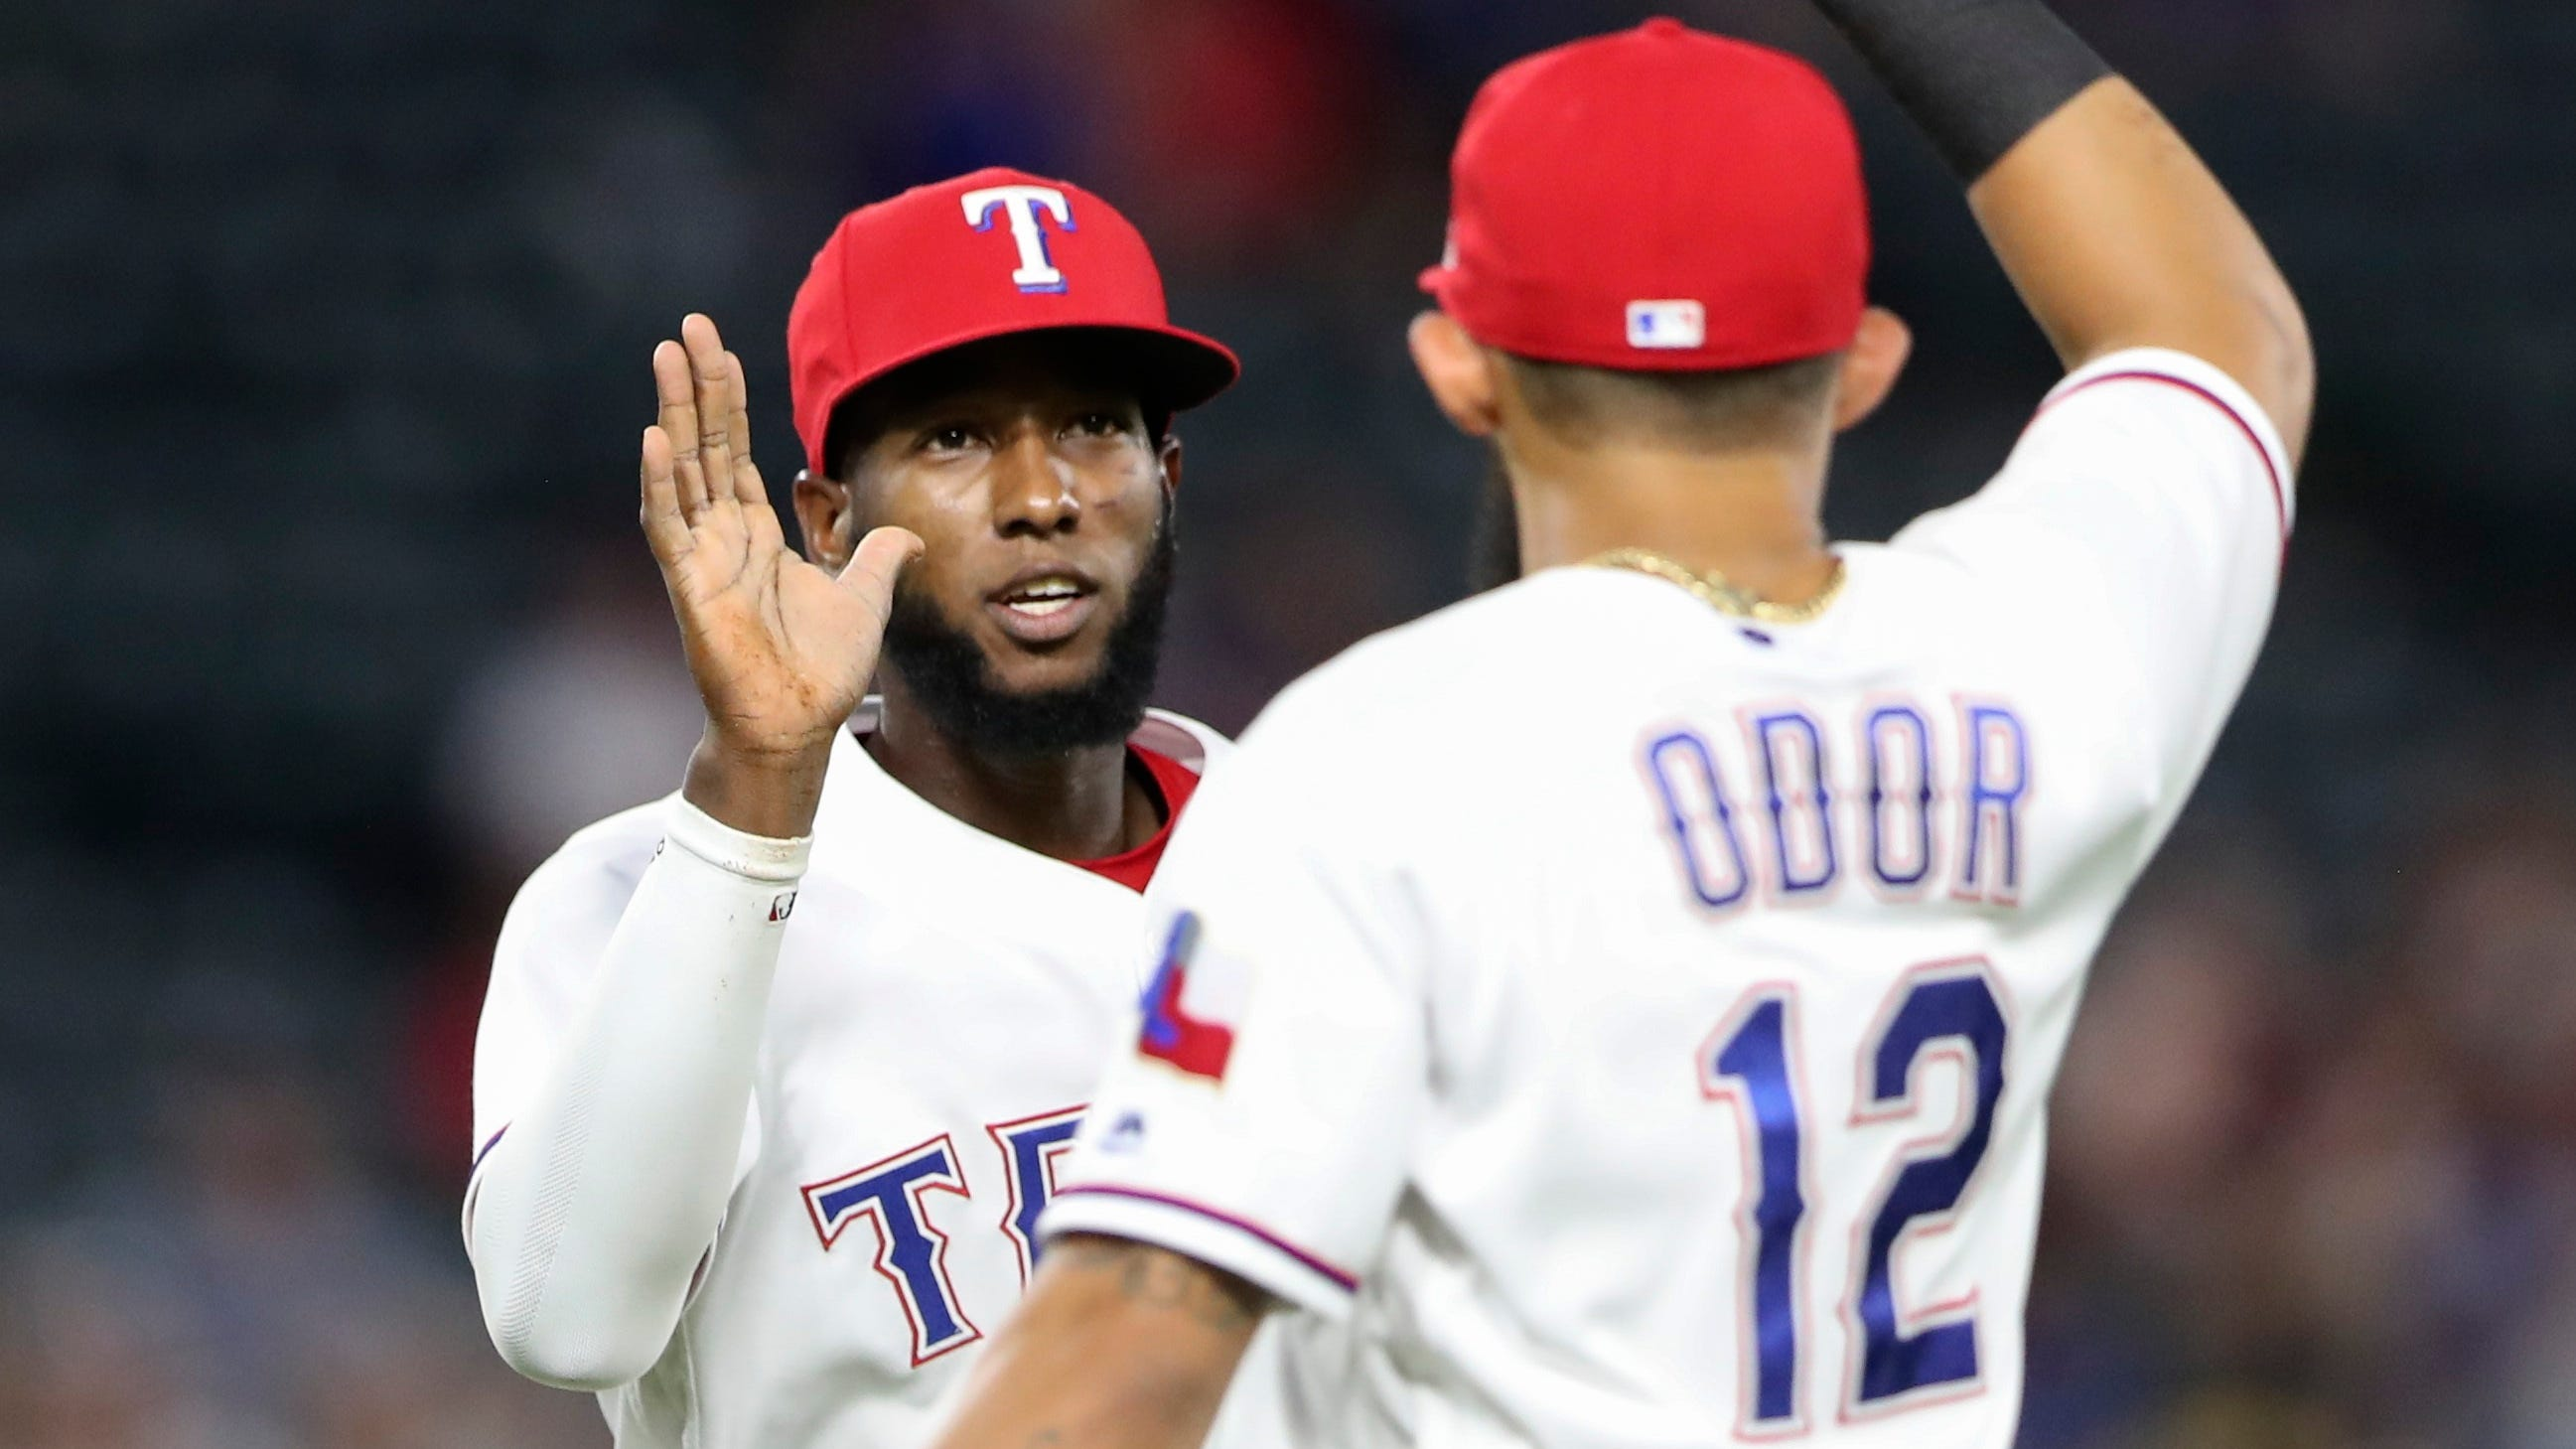 Jurickson Profar and Rougned Odor turned a triple play and helped the Rangers rally for a win.